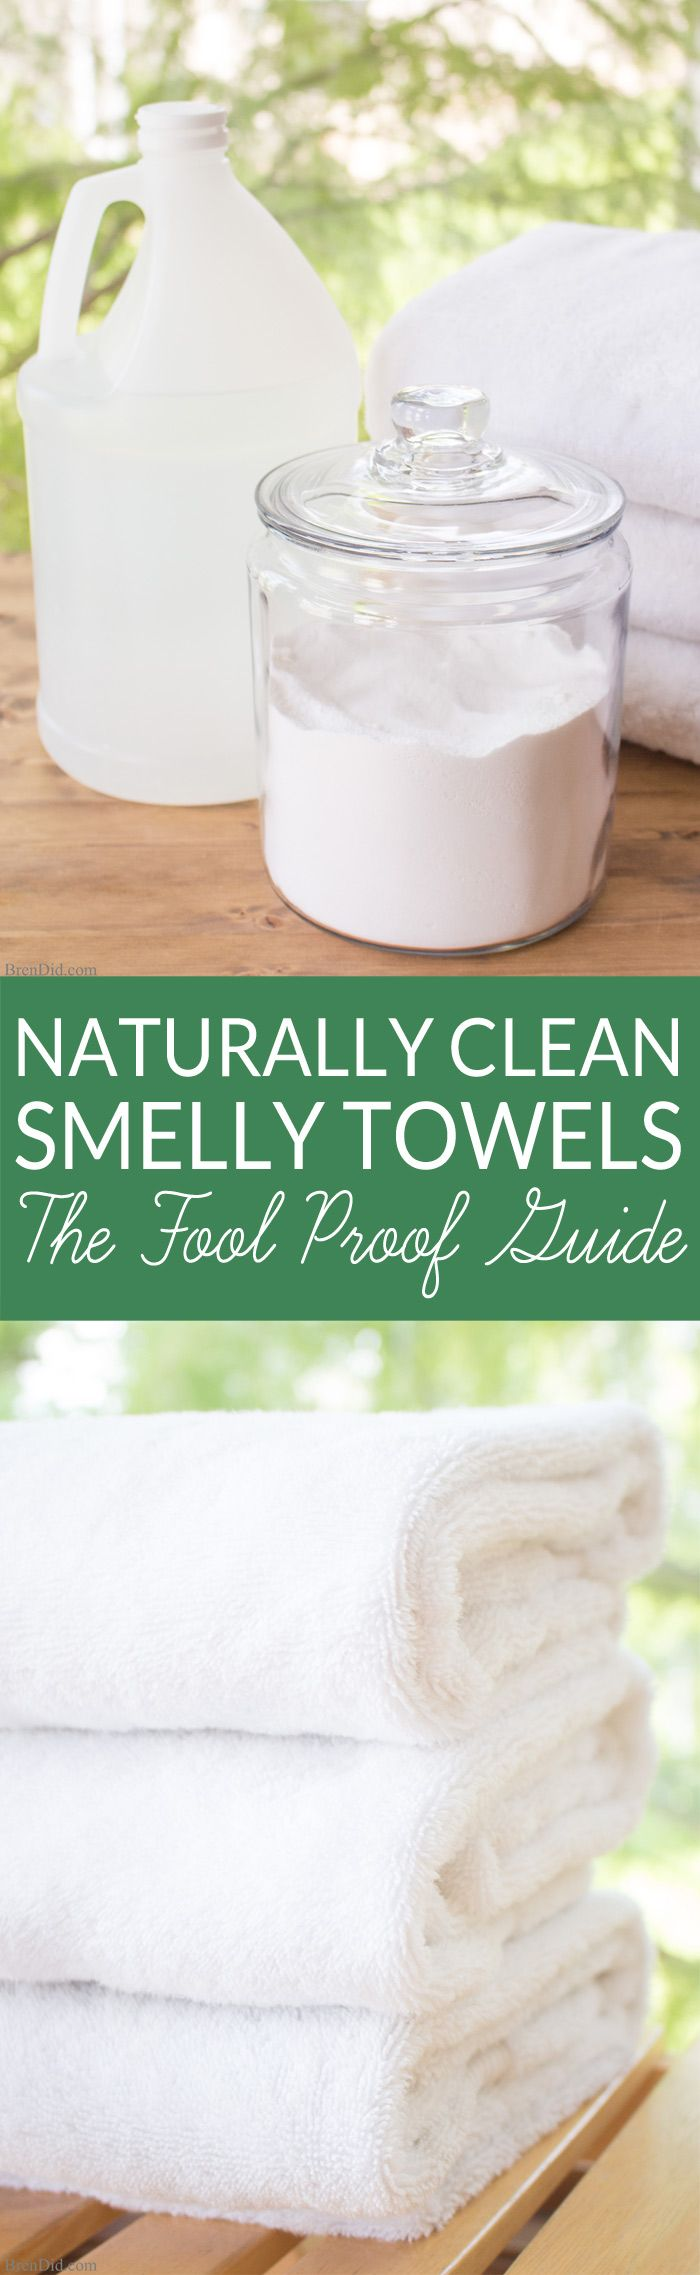 1000 Ideas About Smelly Towels On Pinterest Smelly Laundry